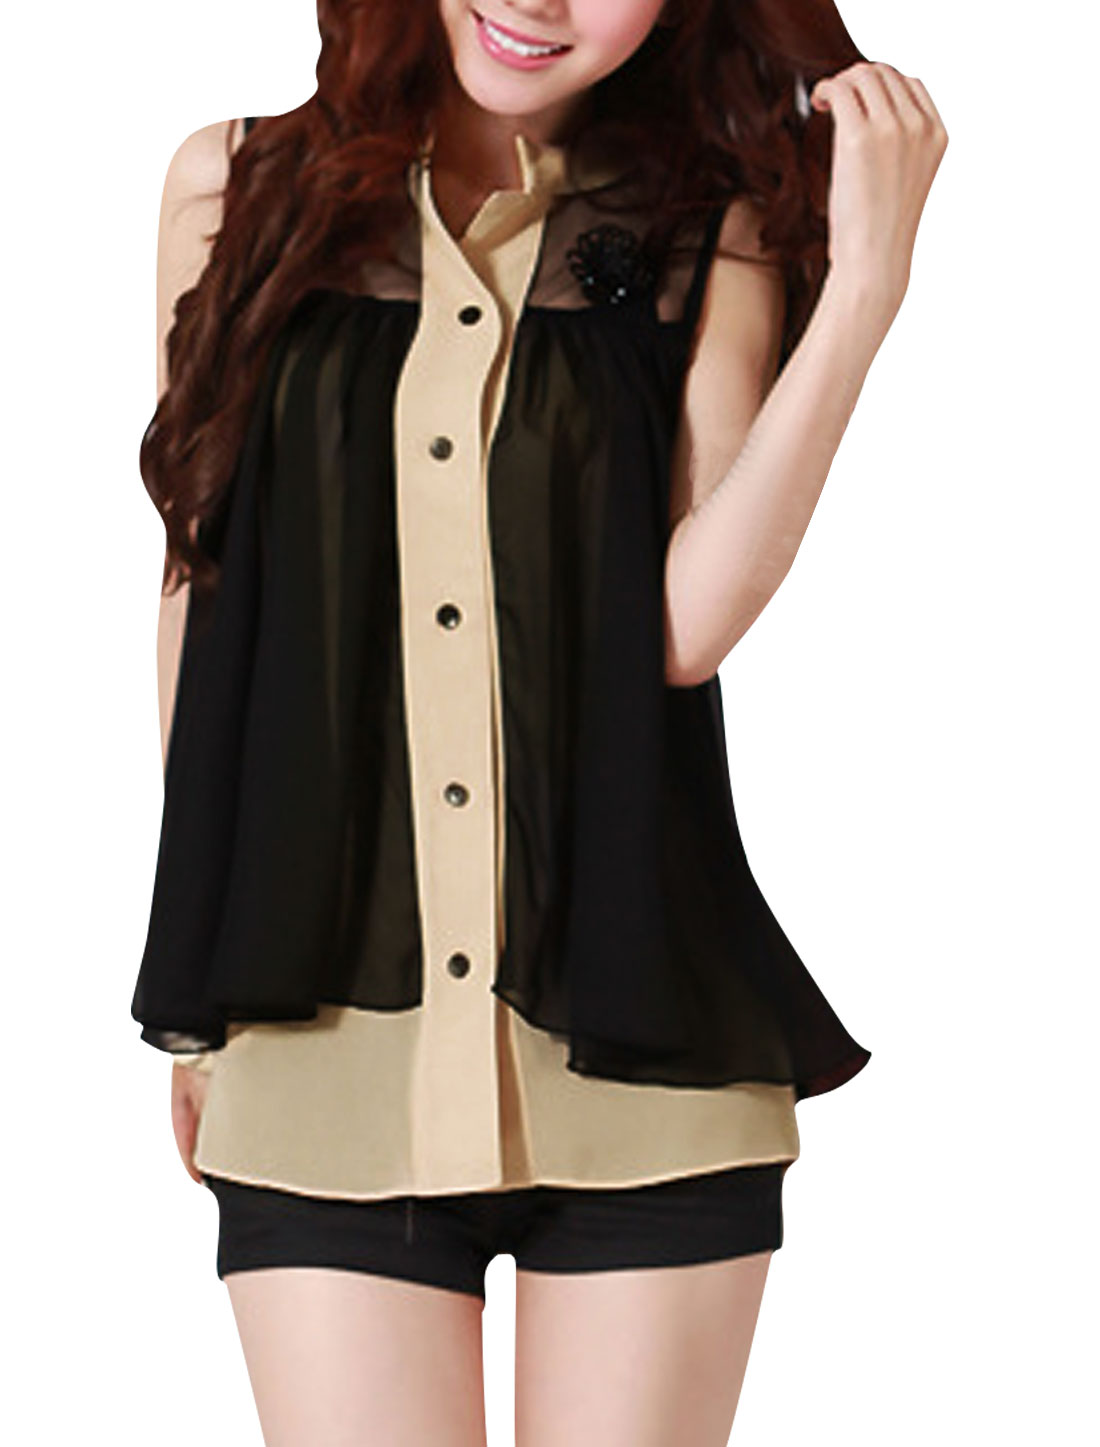 Ladies Black Beige Single Breasted Sleeveless Chiffon Color Panel Shirt XS